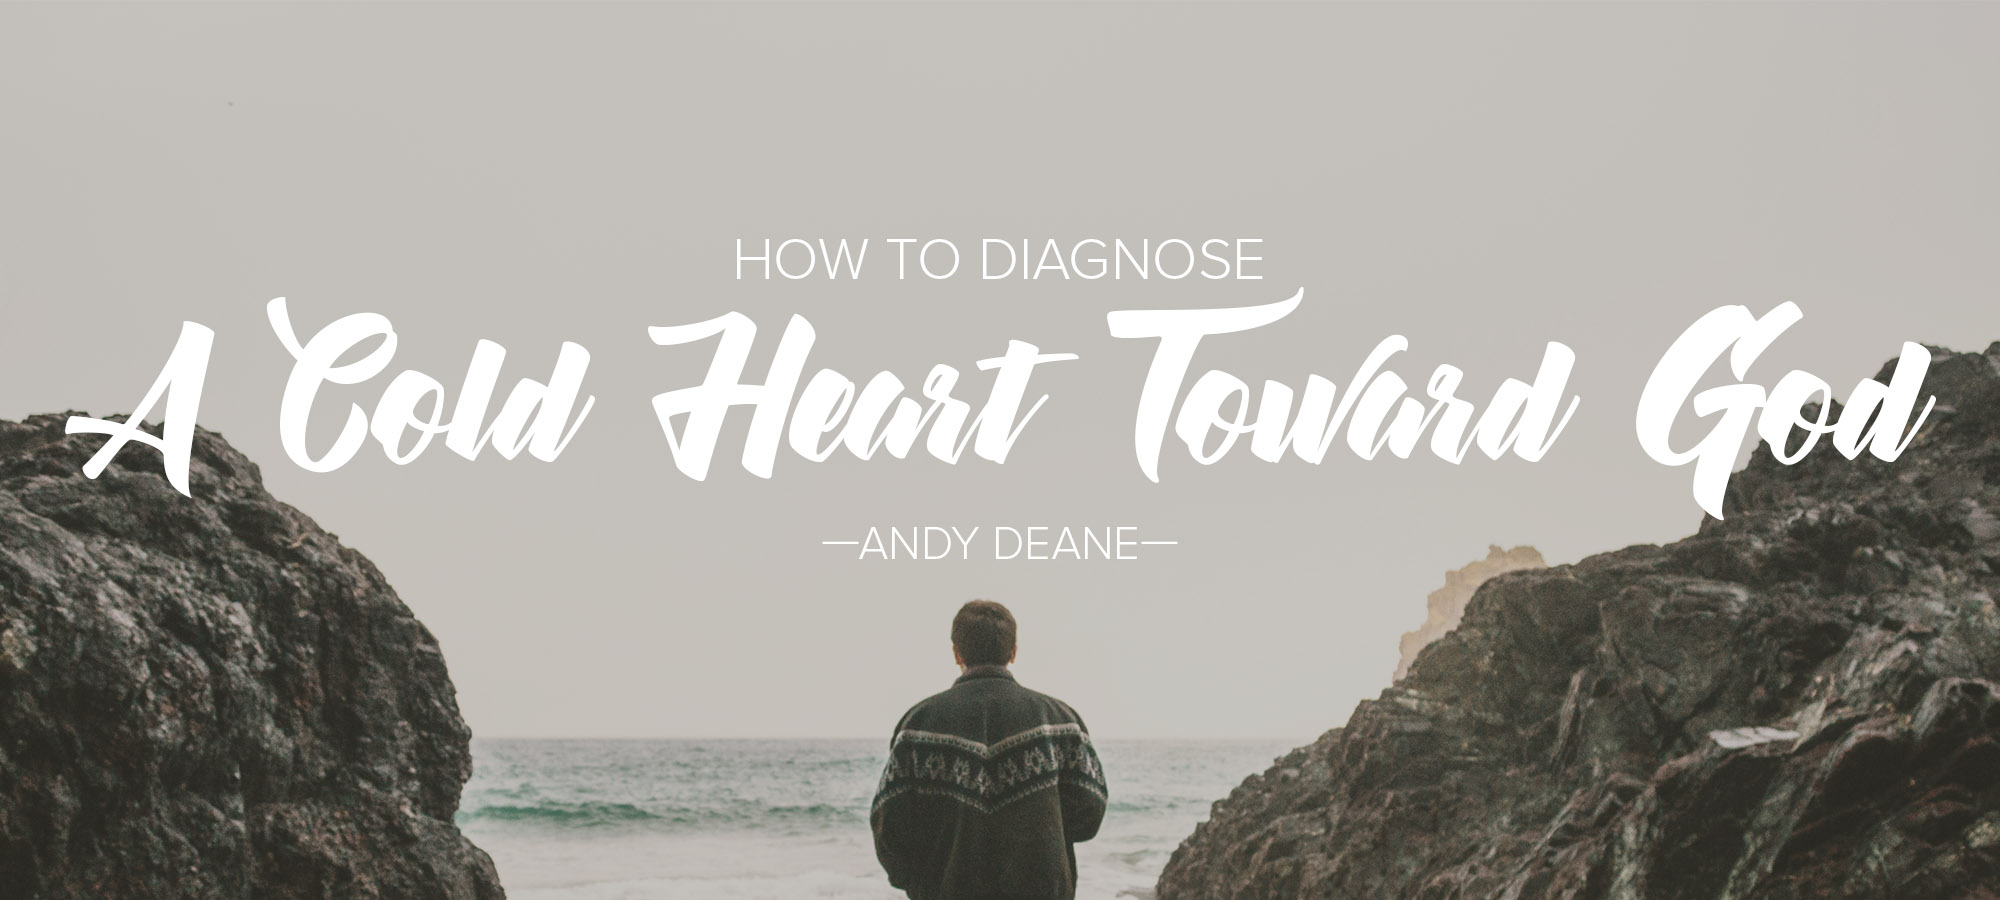 How to Diagnose a Cold Heart Toward God